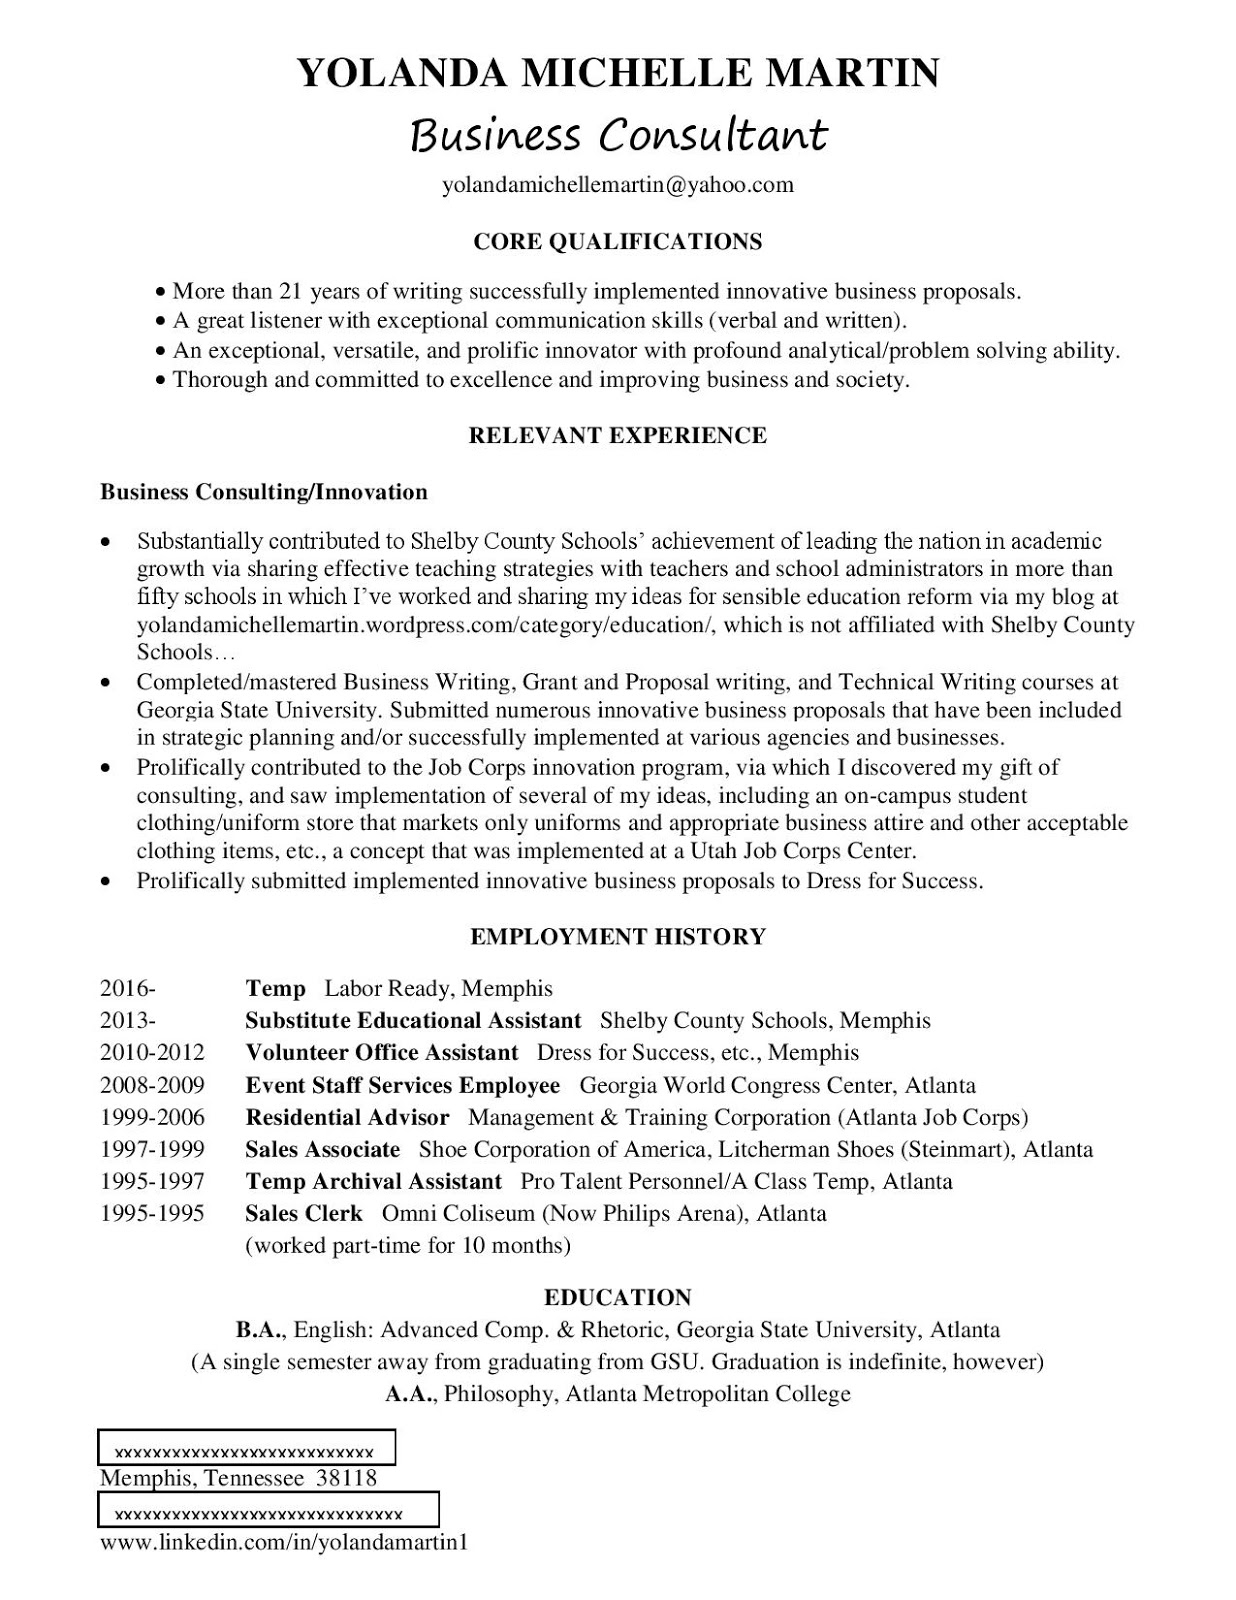 yolanda martin workforce solutions how to create a complete one listing merely the job titles out a summary of job duties in the employment history section in this resume format actually and quite sufficiently